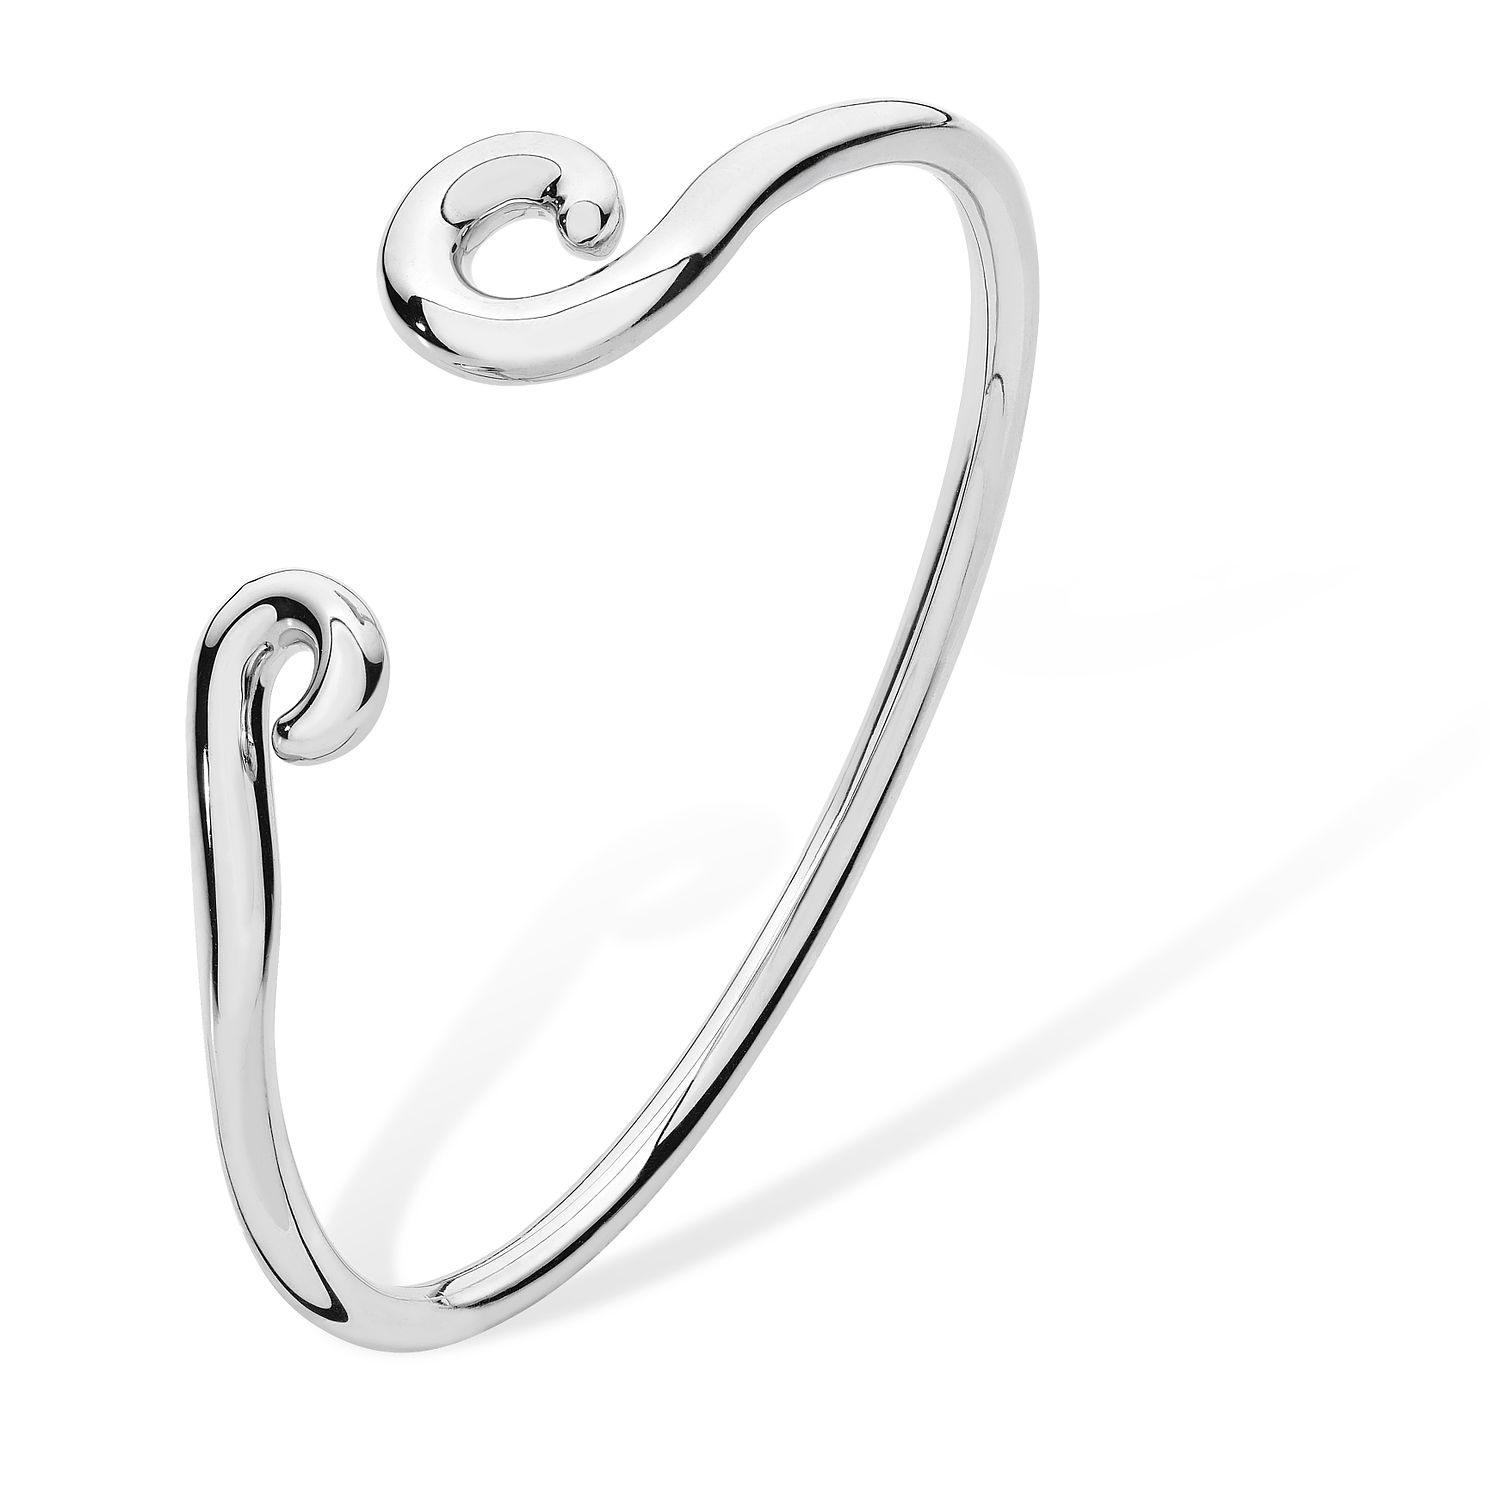 Lucy Quartermaine Silver 925 Twist Element Bangle - Product number 1160656